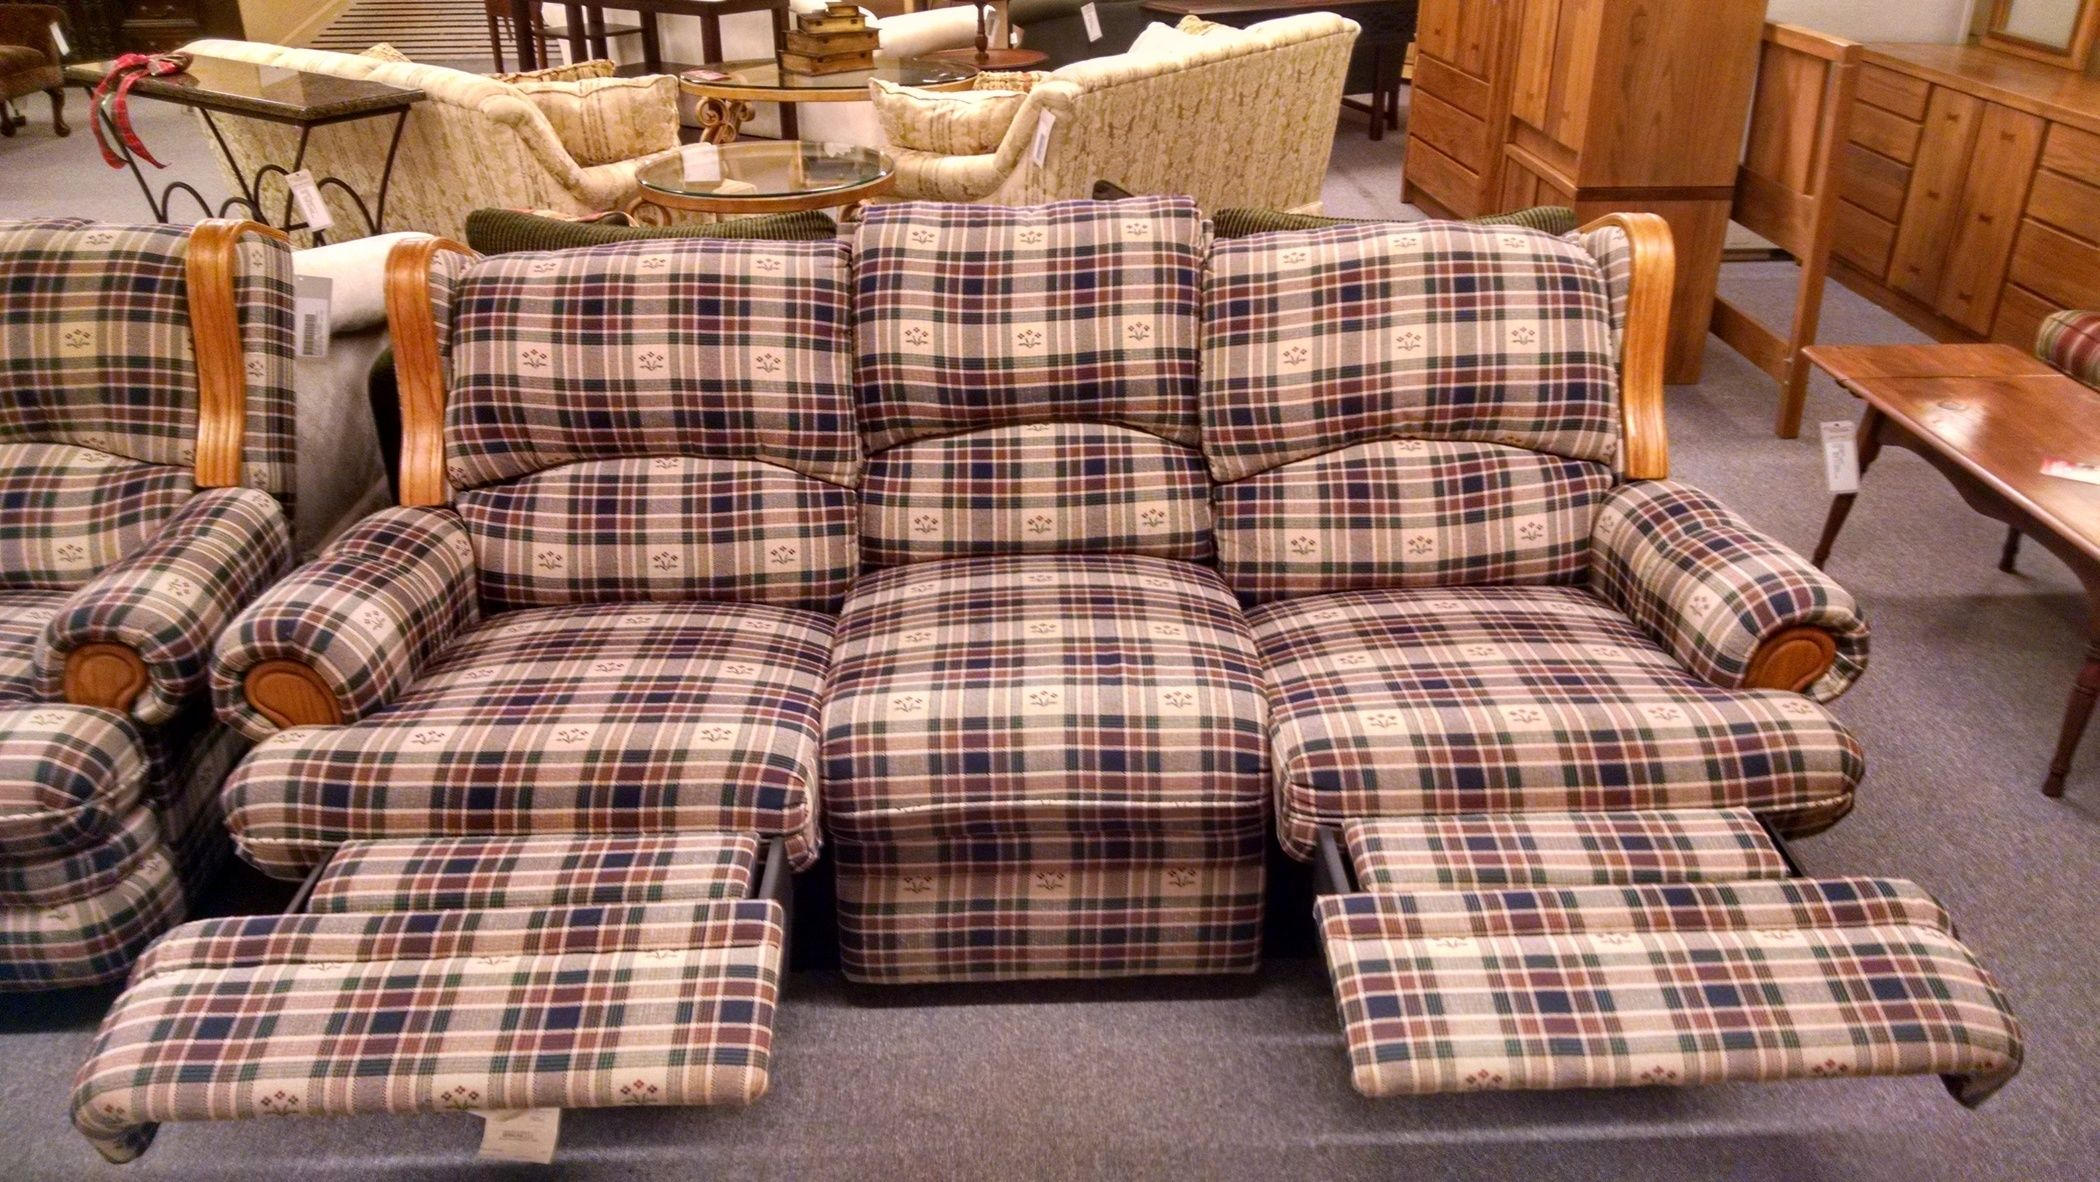 taylor king sofas 3 seat individual cushion sofa covers berkline country plaid | delmarva furniture consignment